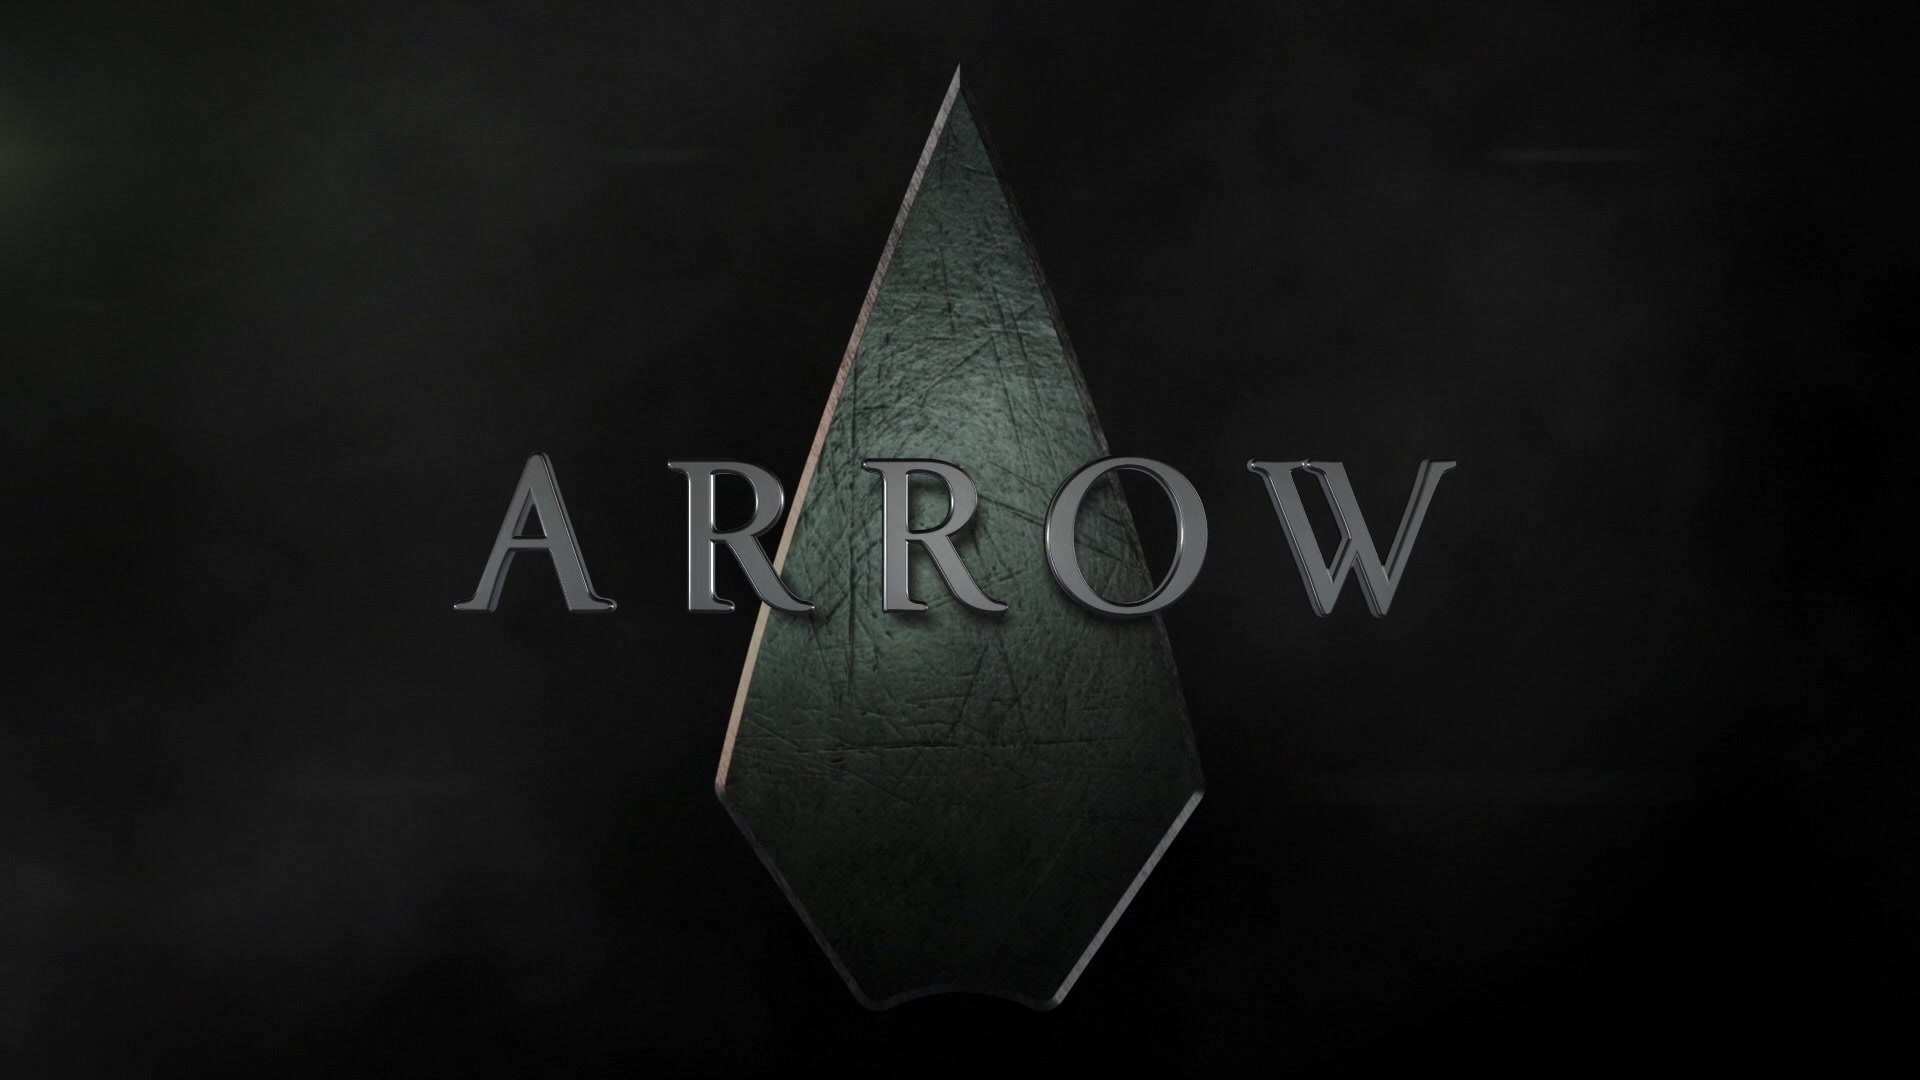 Arrow (TV Series) Episode: Reset